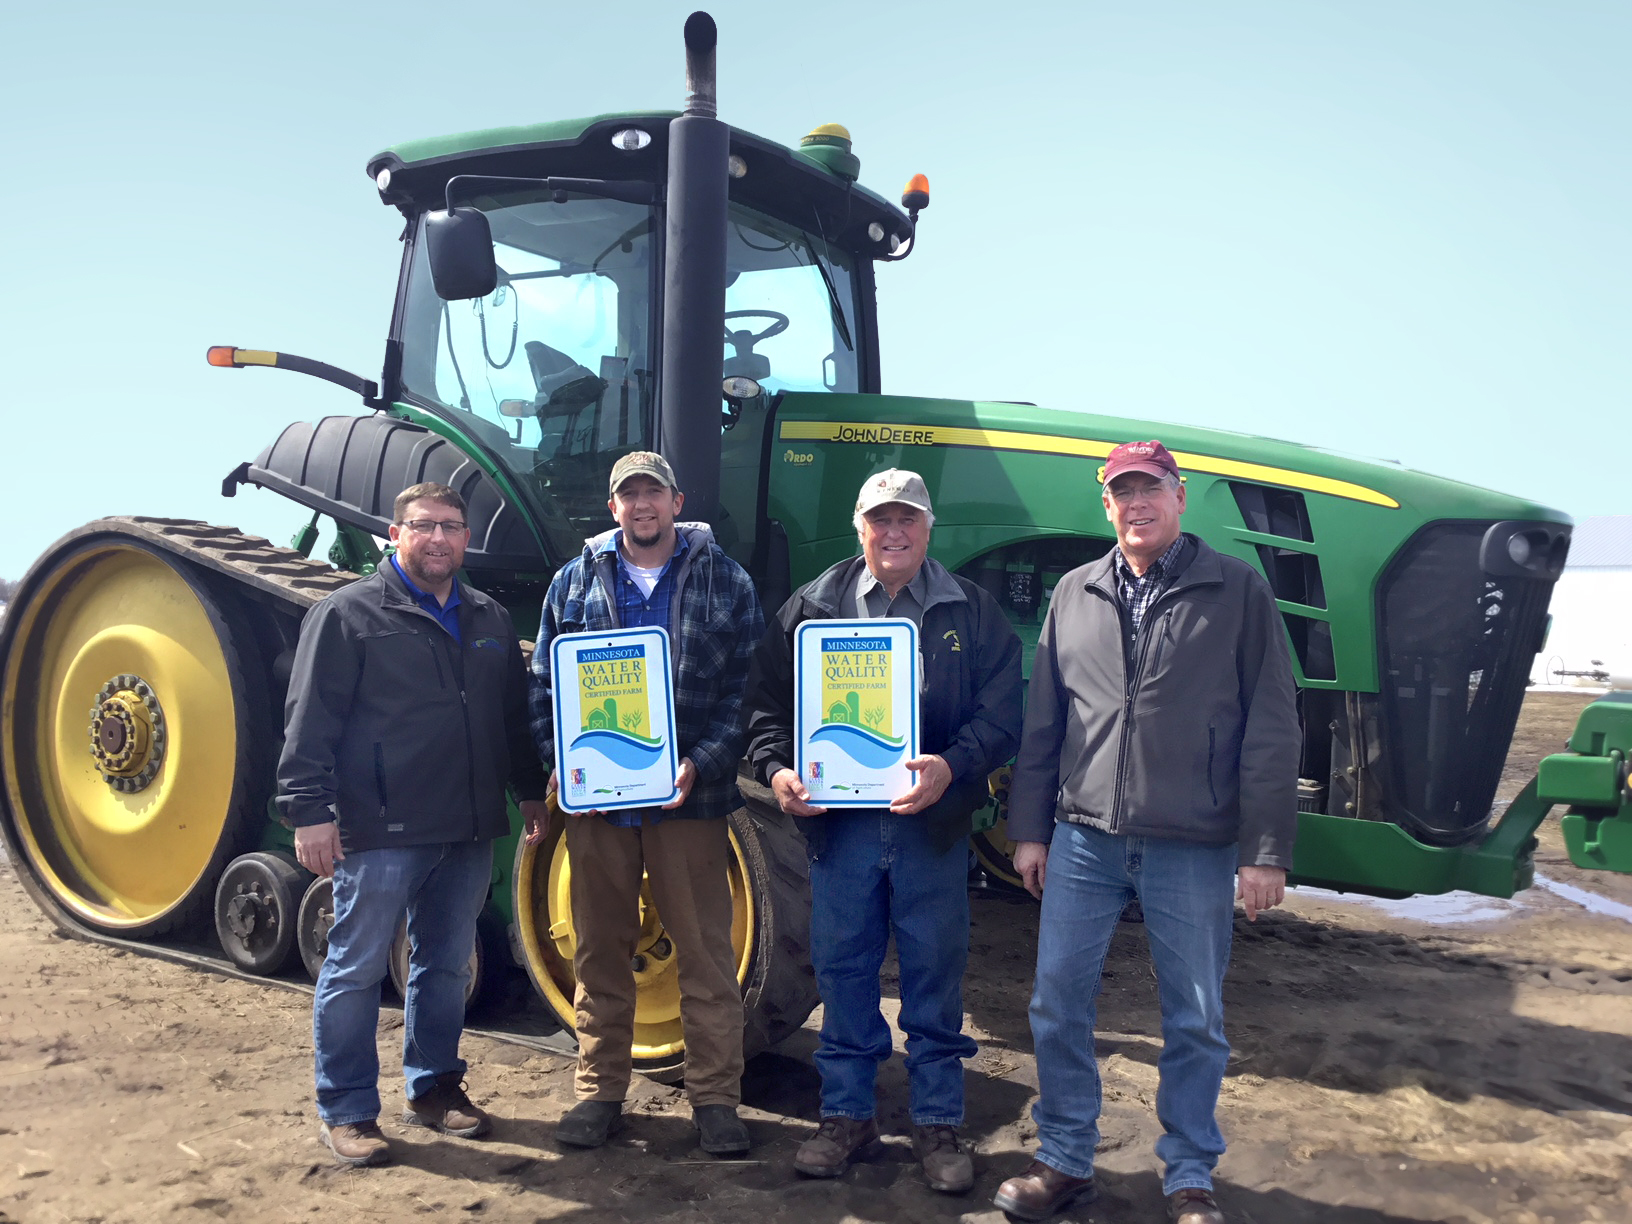 Darren Newville, District Manager at East Otter Tail and Wadena Soil and Water Conservation Districts; MAWQCP certified producers Andrew and Dale Schock; MAWQCP Area Certification Specialist Jim Lahn.